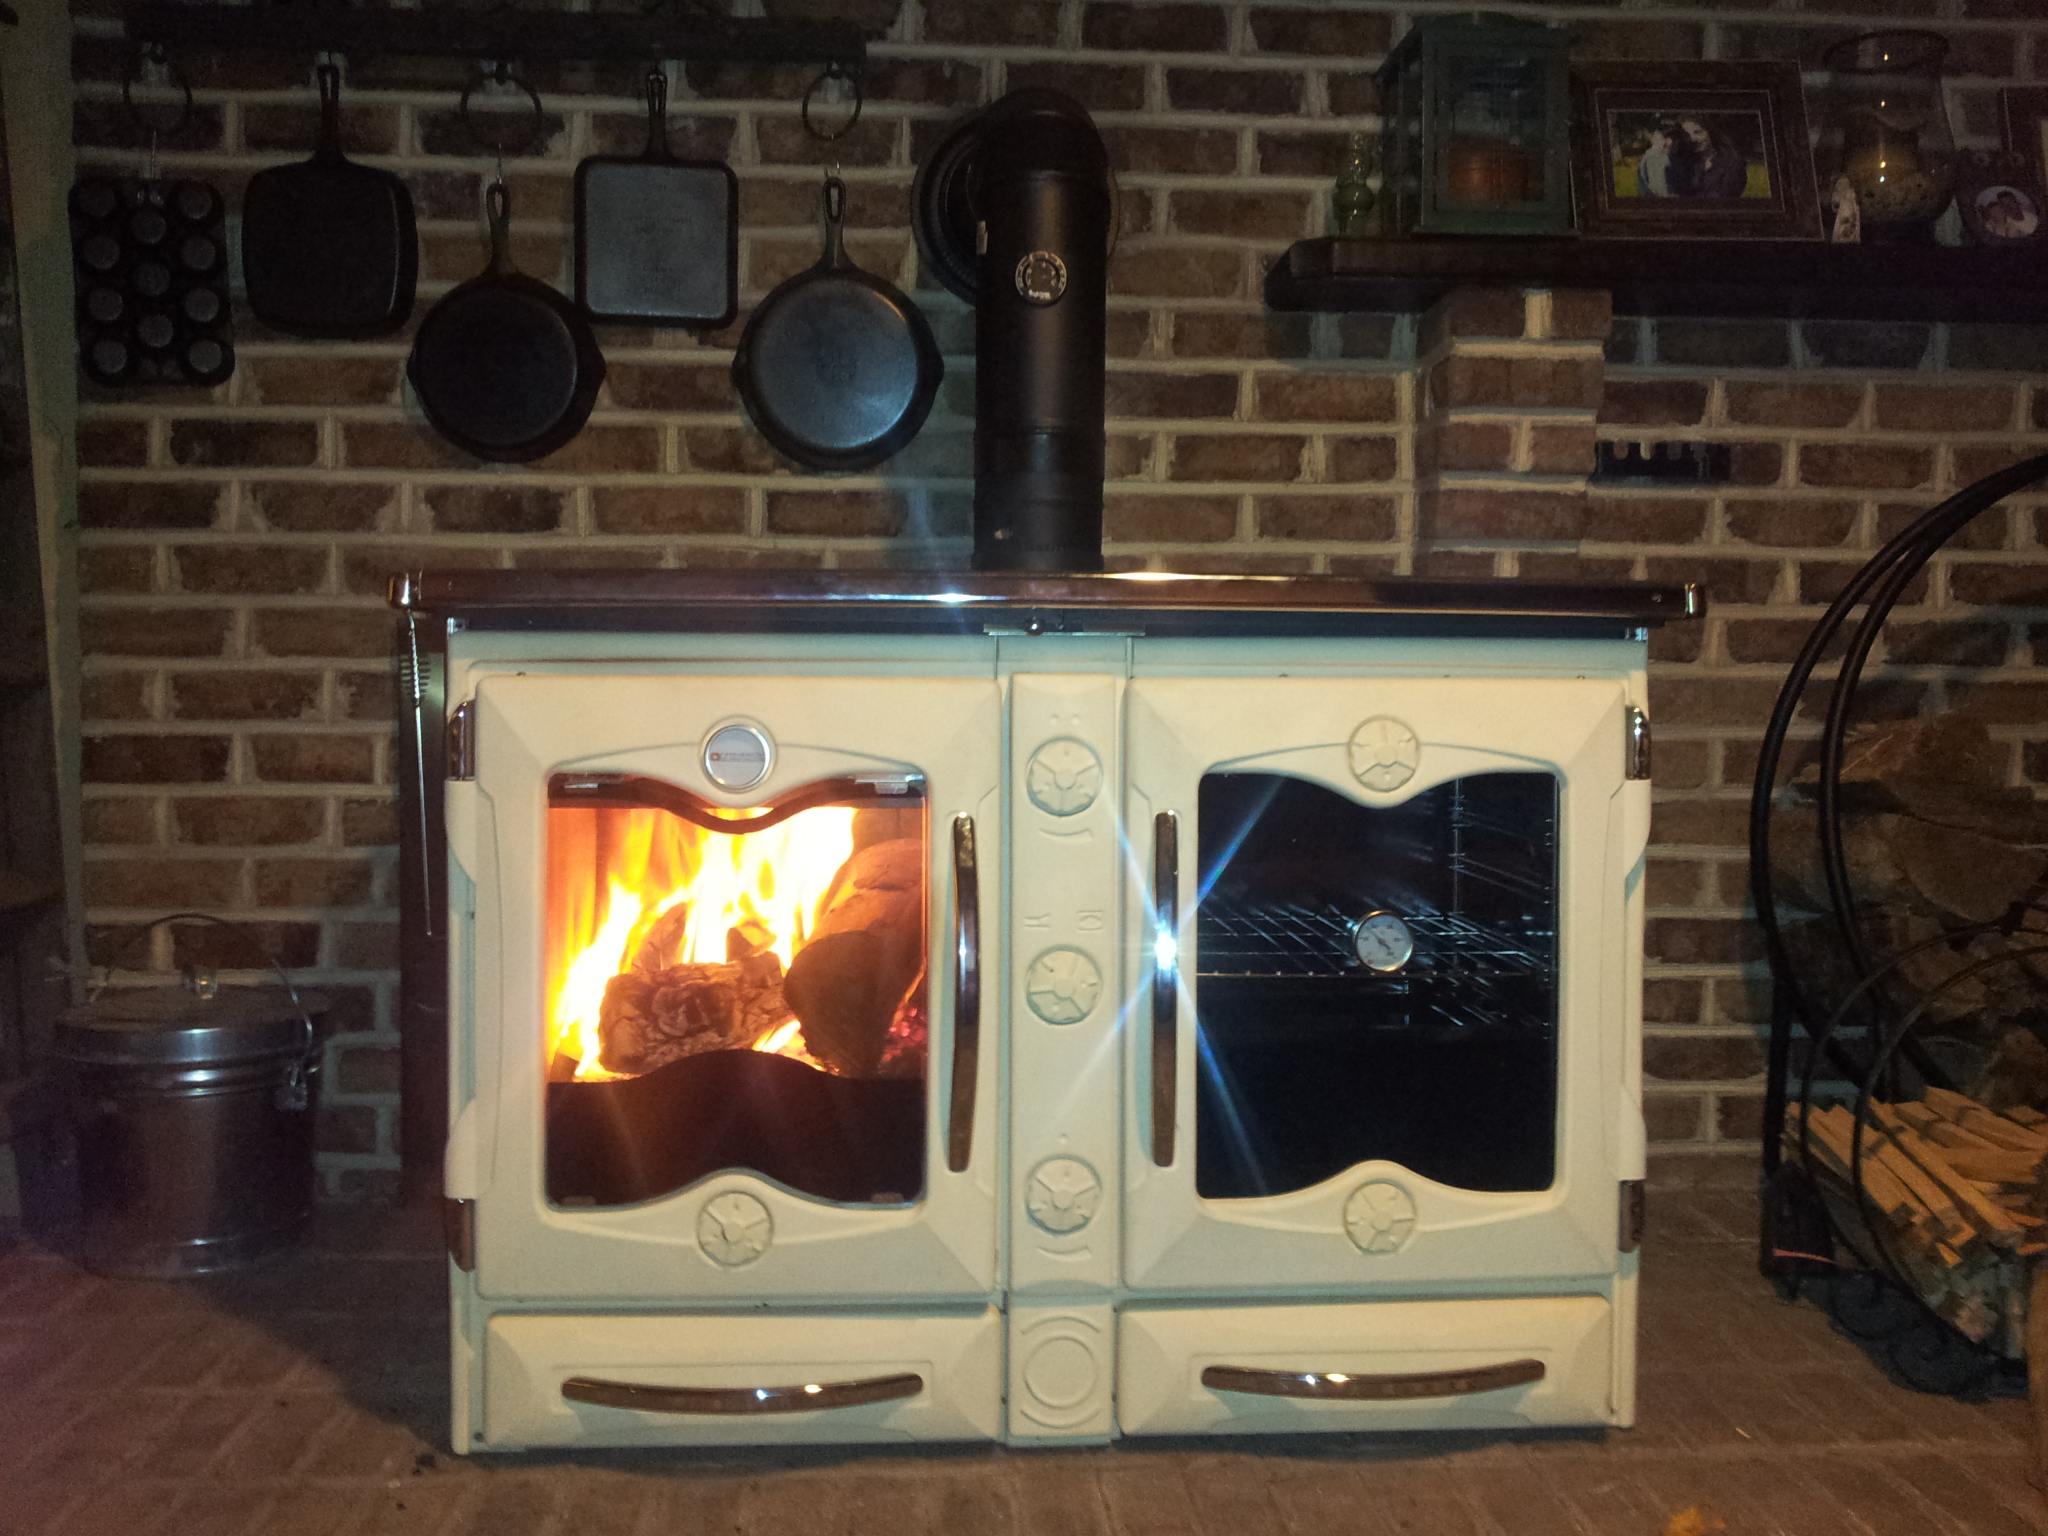 What To Look For When Shopping For A Wood Cook Stove